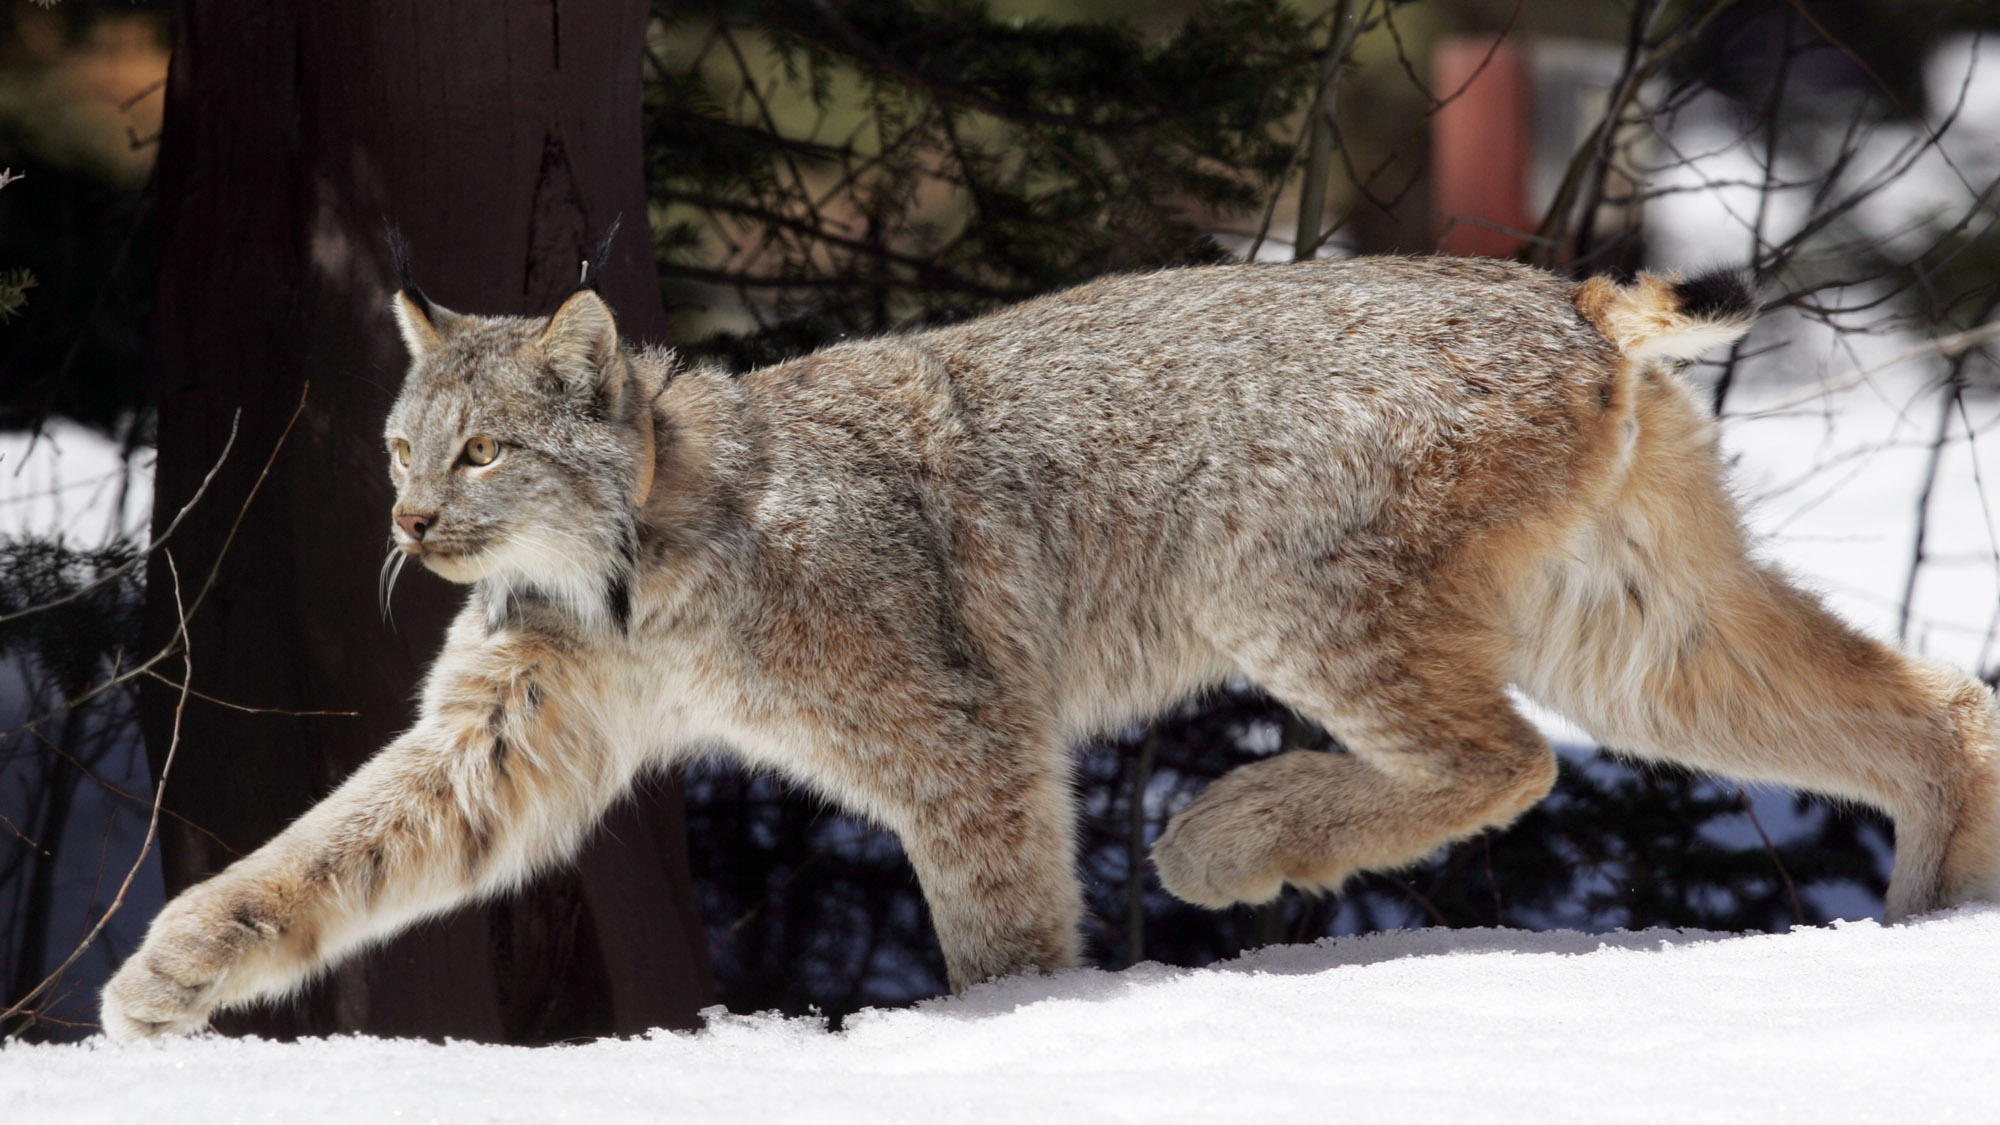 In this Tuesday, April 19,2005 file photo a Canada lynx heads into the Rio Grande National Forest after being released near Creede, Colo. Wildlife officials have dropped their appeal of a court ruling that forces the government to revise its flawed plan to protect critical habitat for Canada lynx. The move means the U.S. Fish and Wildlife Service will have to reconsider areas in Colorado, Montana and Idaho for critical habitat designation.